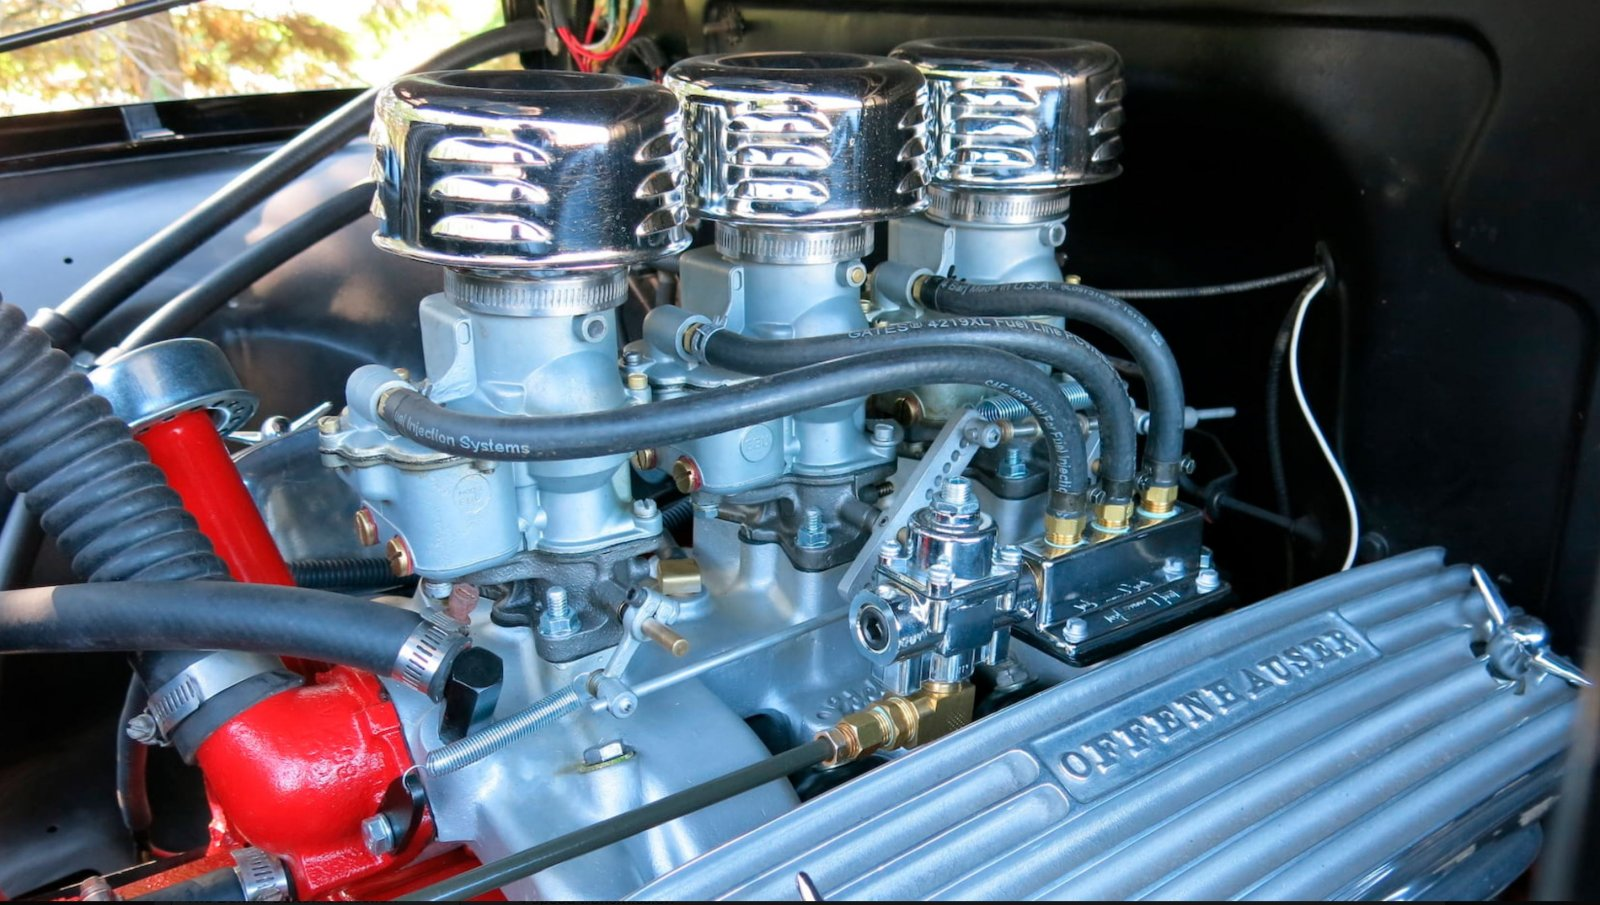 1955-ford-f250-pickup-truck-with-a-239ci-tri-power-6-jpg.7362